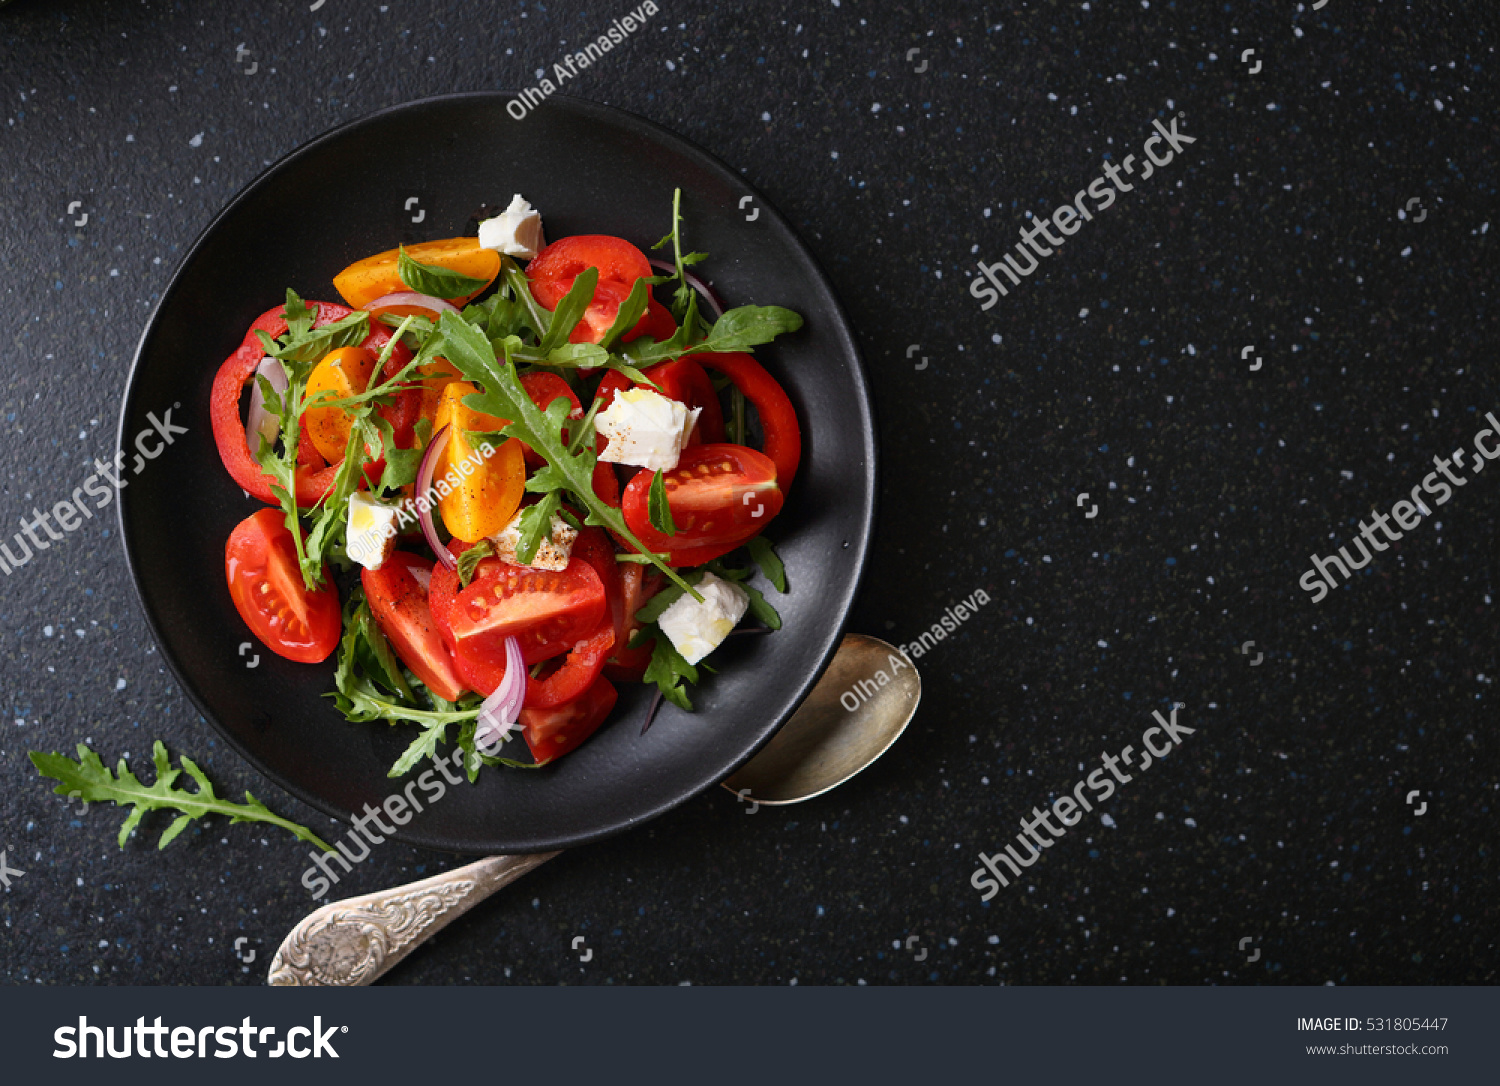 Plate With Food Top View Healthy Salad On Plate Food Top View Stock Photo